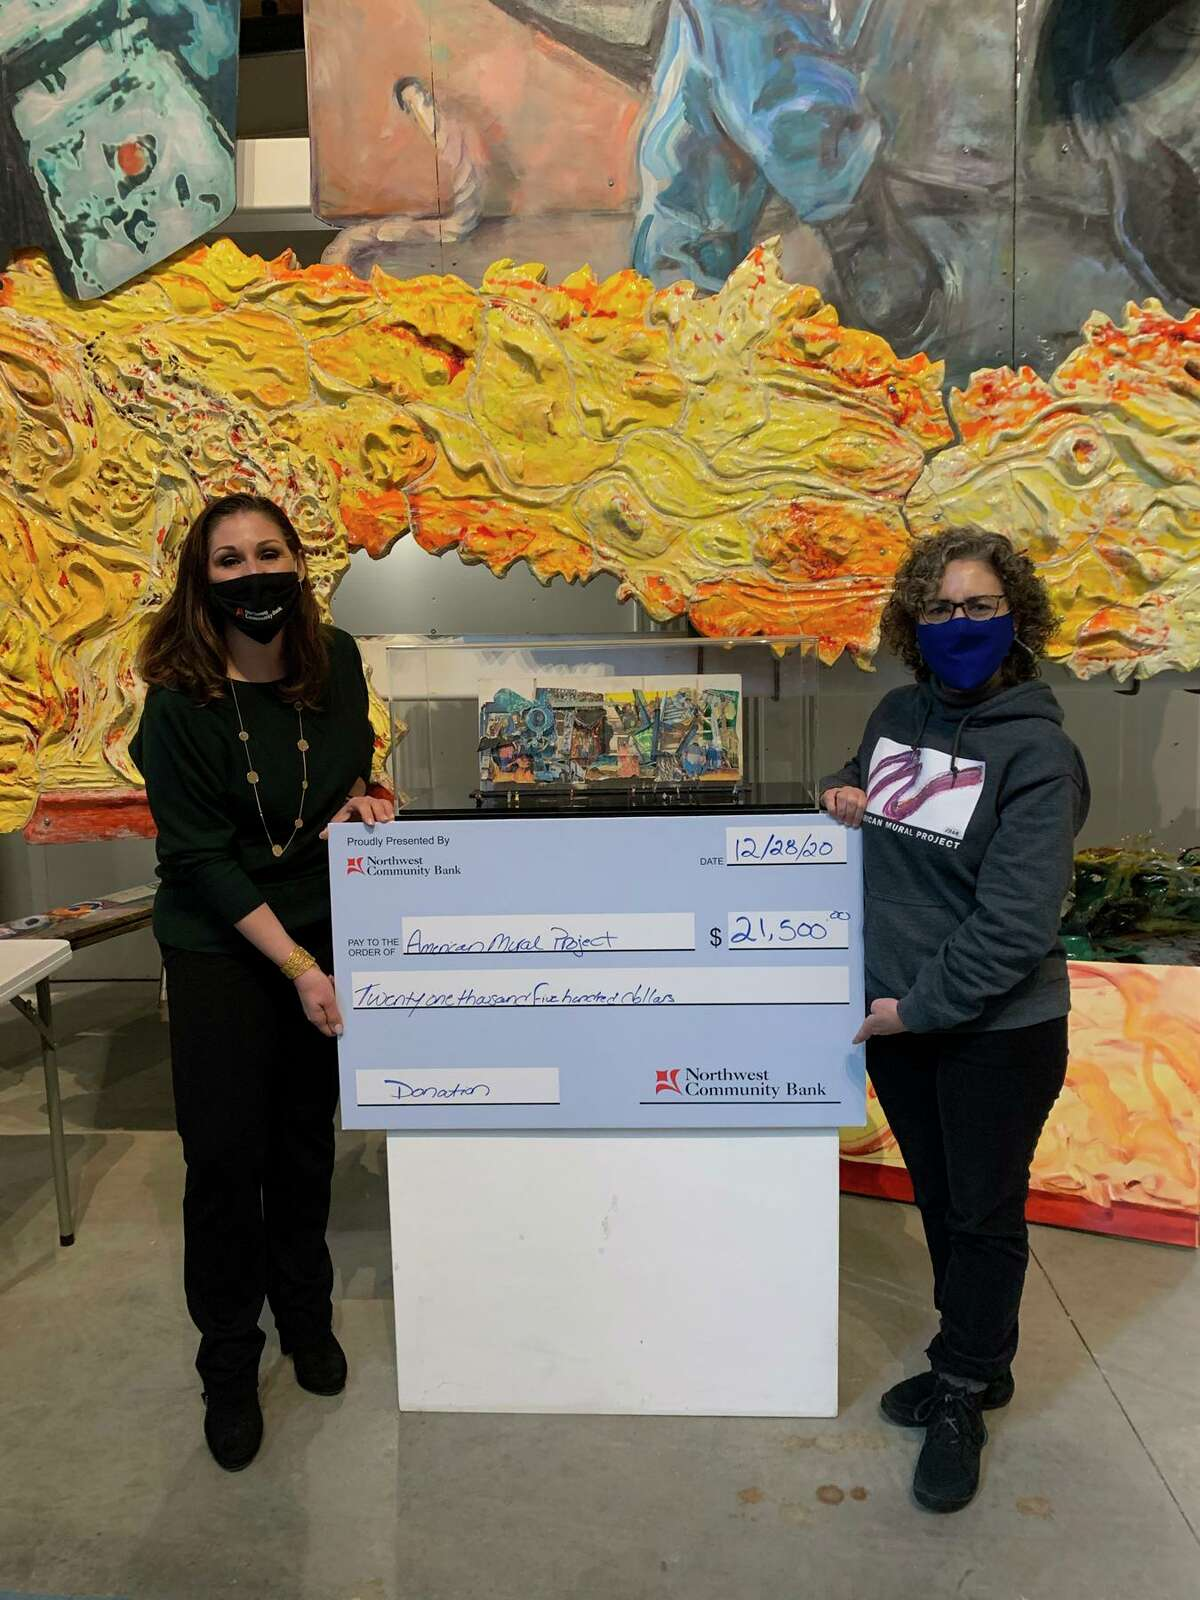 Dea Pitruzzello, Northwest Community Bank Vice President, Branch Administration, presents a $21,500 donation to American Mural Project to Executive Director Amy Winn.